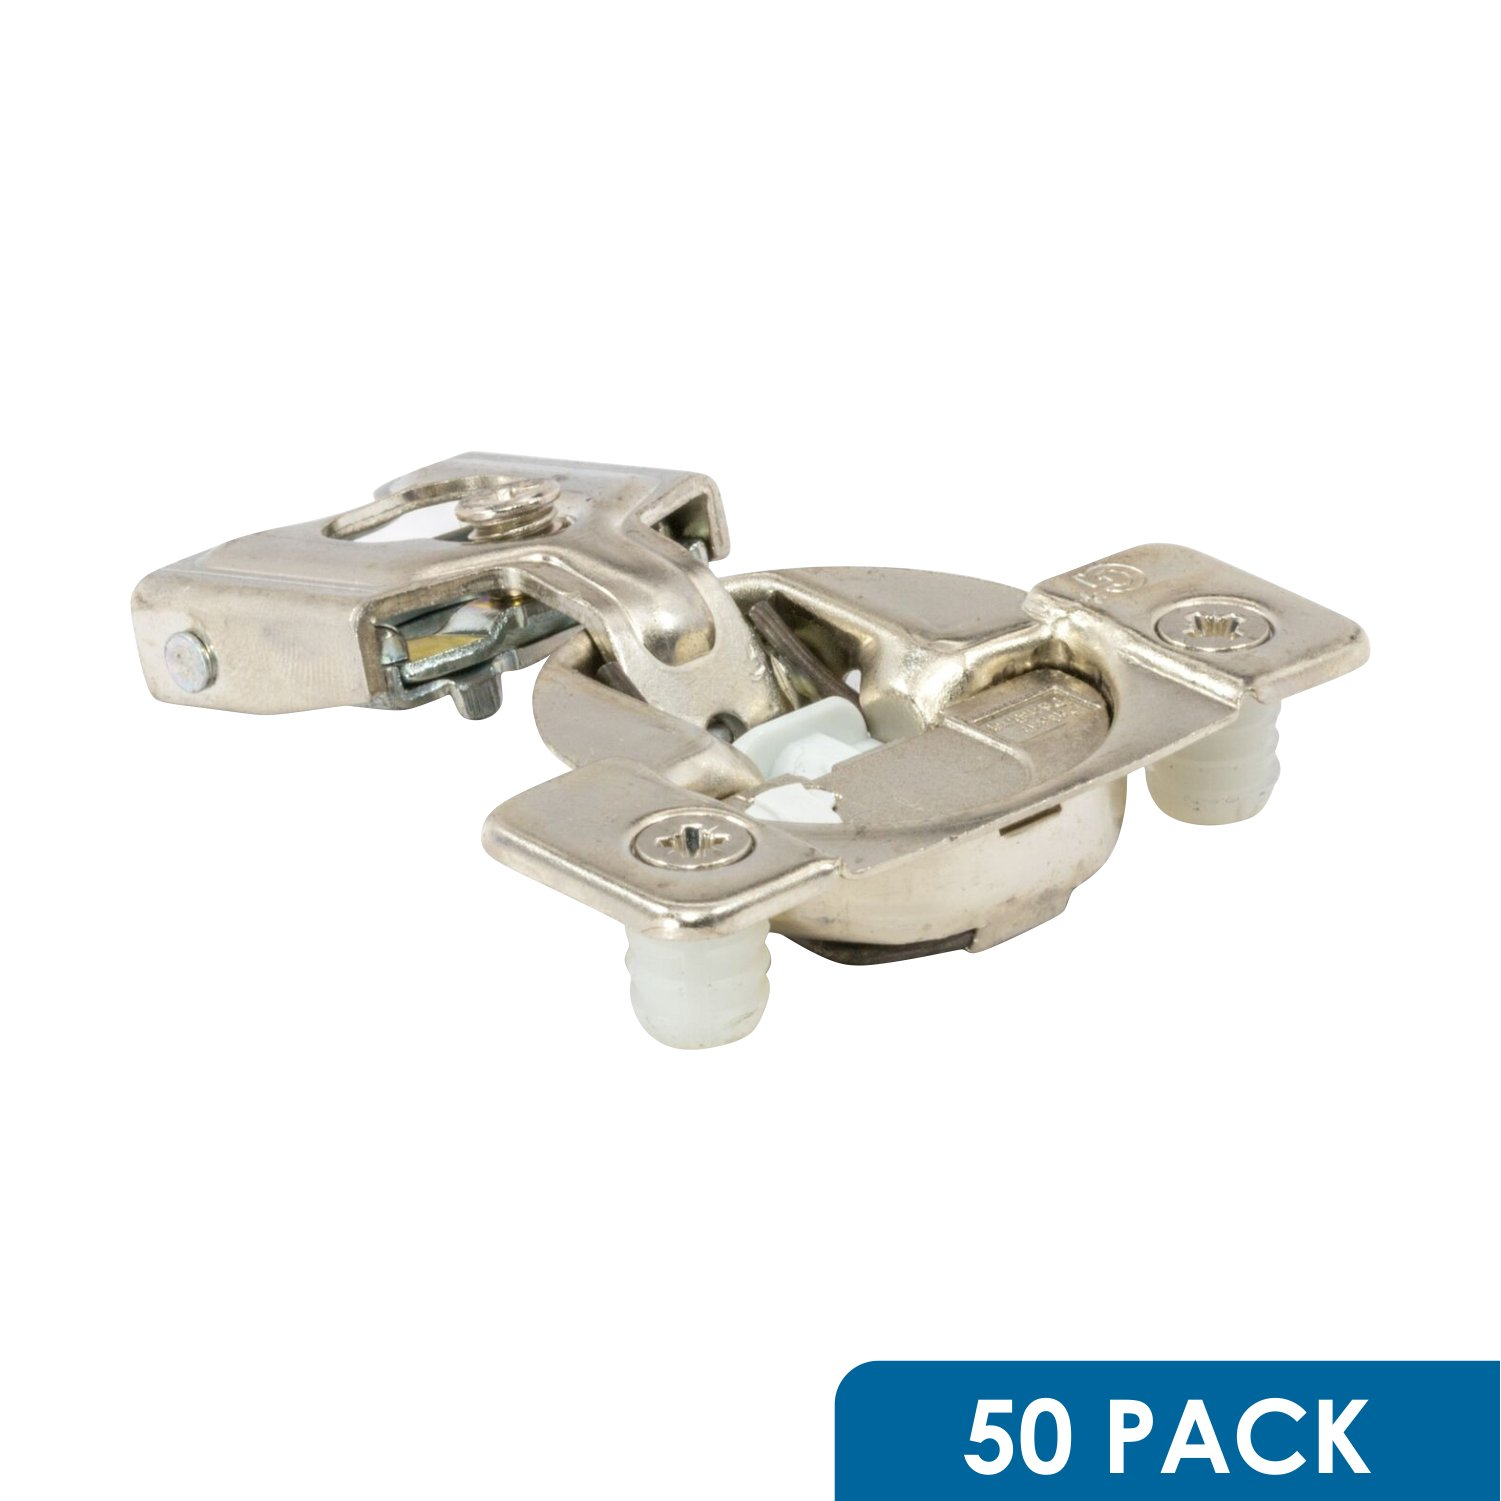 50 Pack Rok Hardware Grass TEC 108 Degree 1/2'' Overlay Soft Close Press In Compact Edge Mount Cabinet Hinge 02749A-15 3-Way Adjustment 42mm Screw Hole Pattern